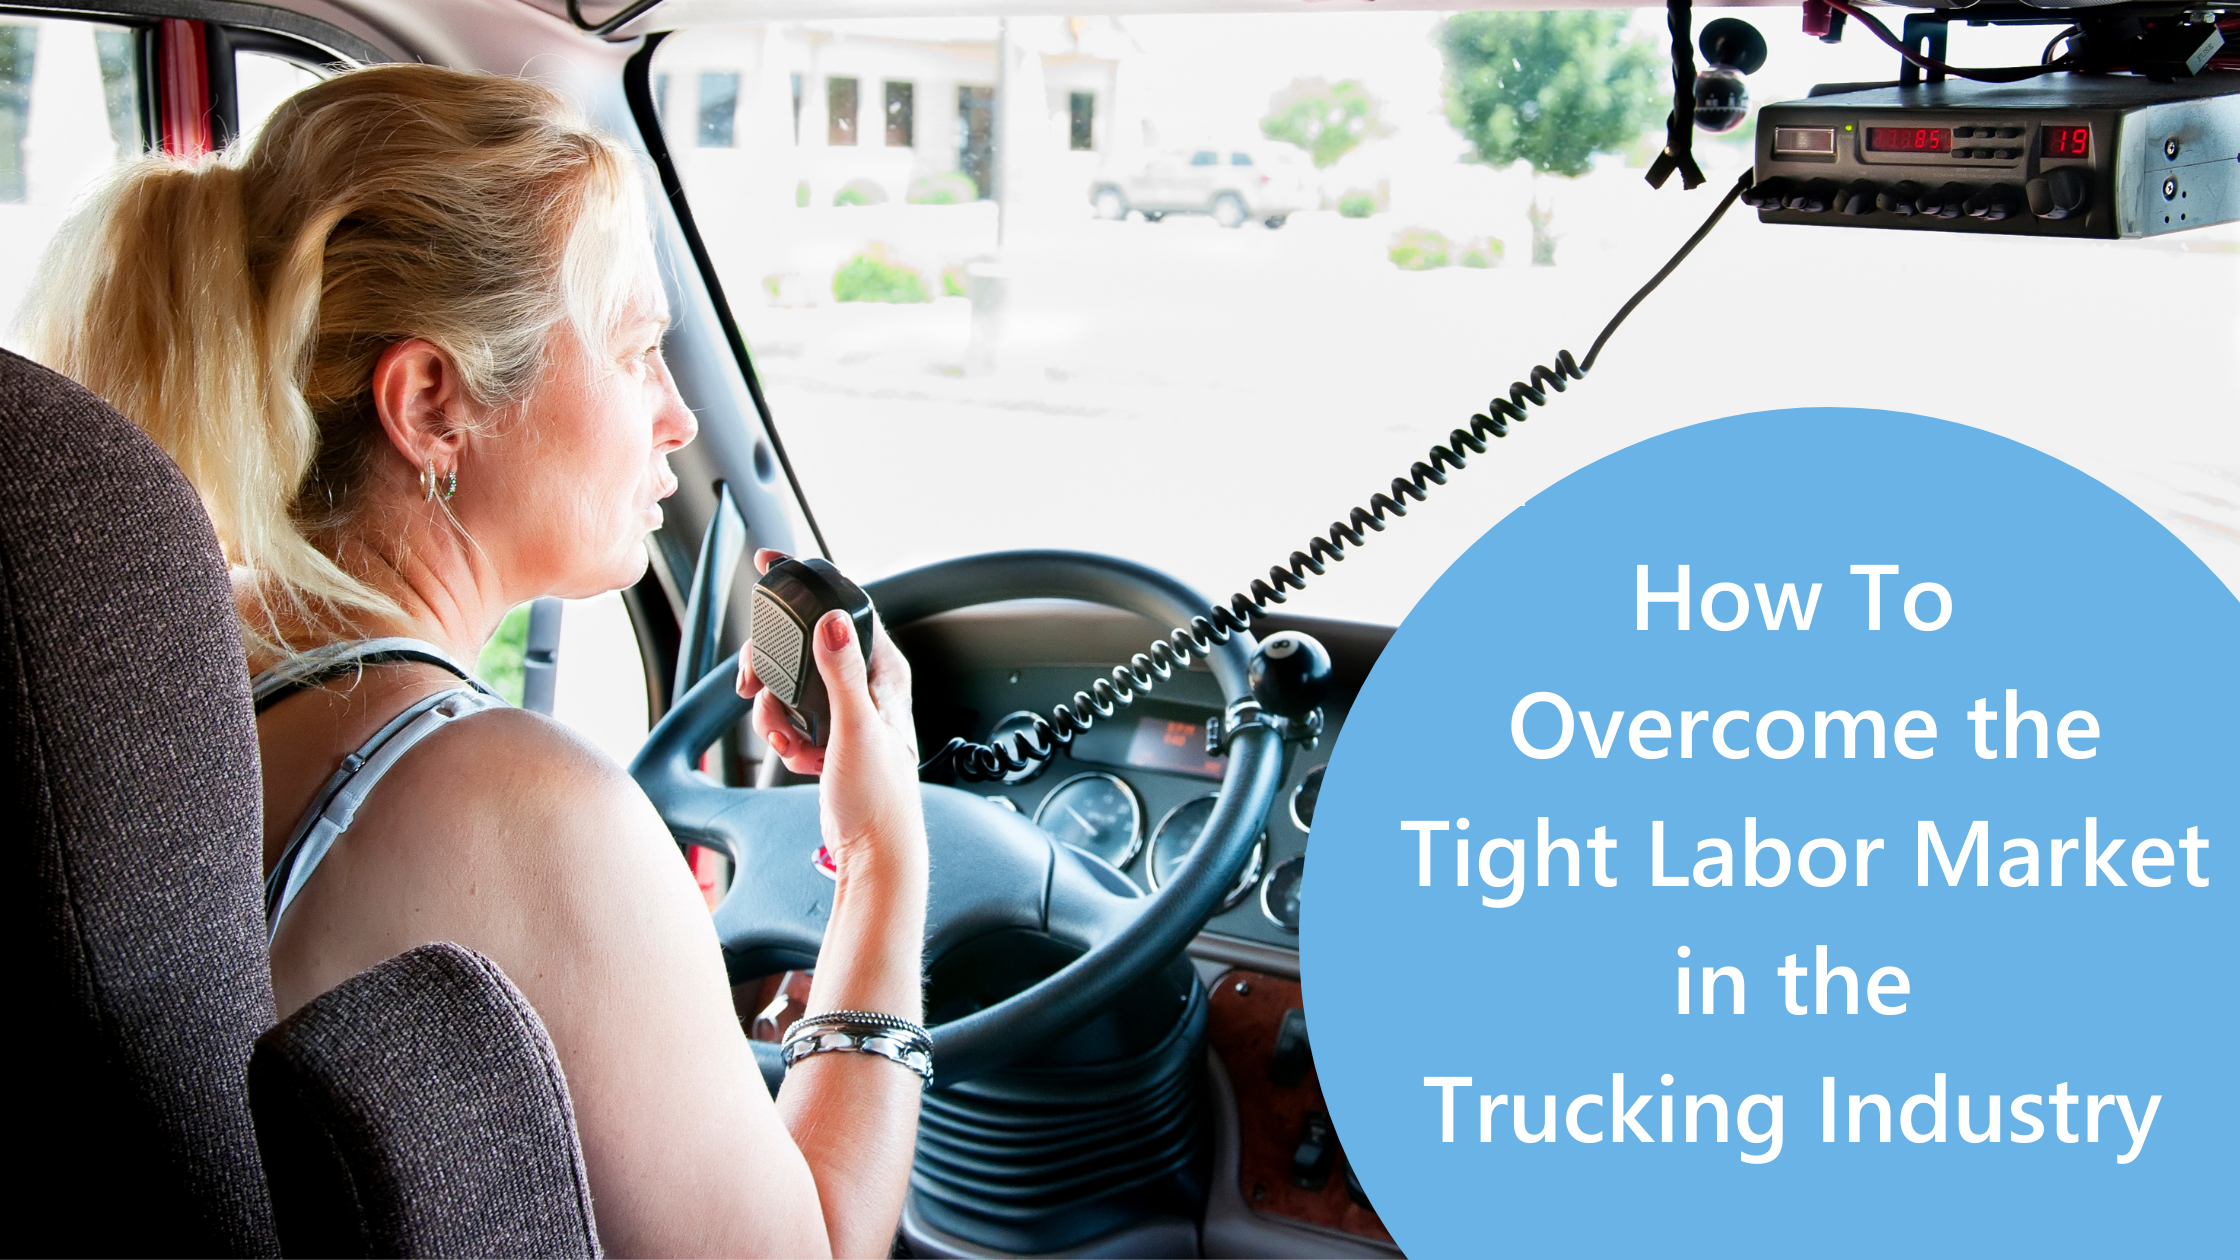 How To Overcome the Tight Labor Market in the Trucking Industry